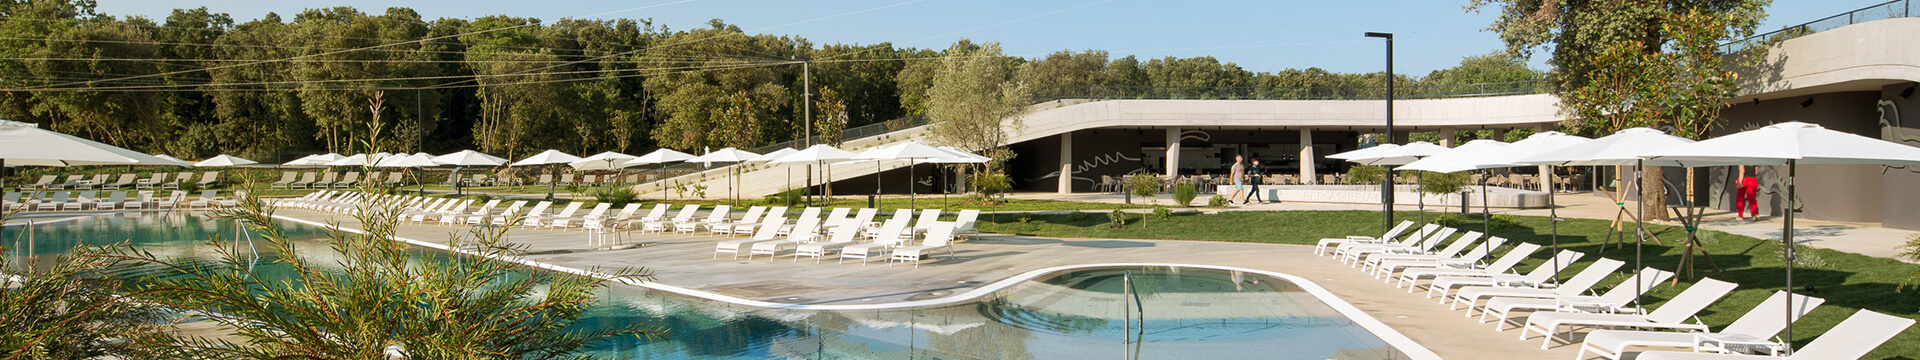 New mobile homes, water park, pool complex and prestigious awards in campsites in Istria